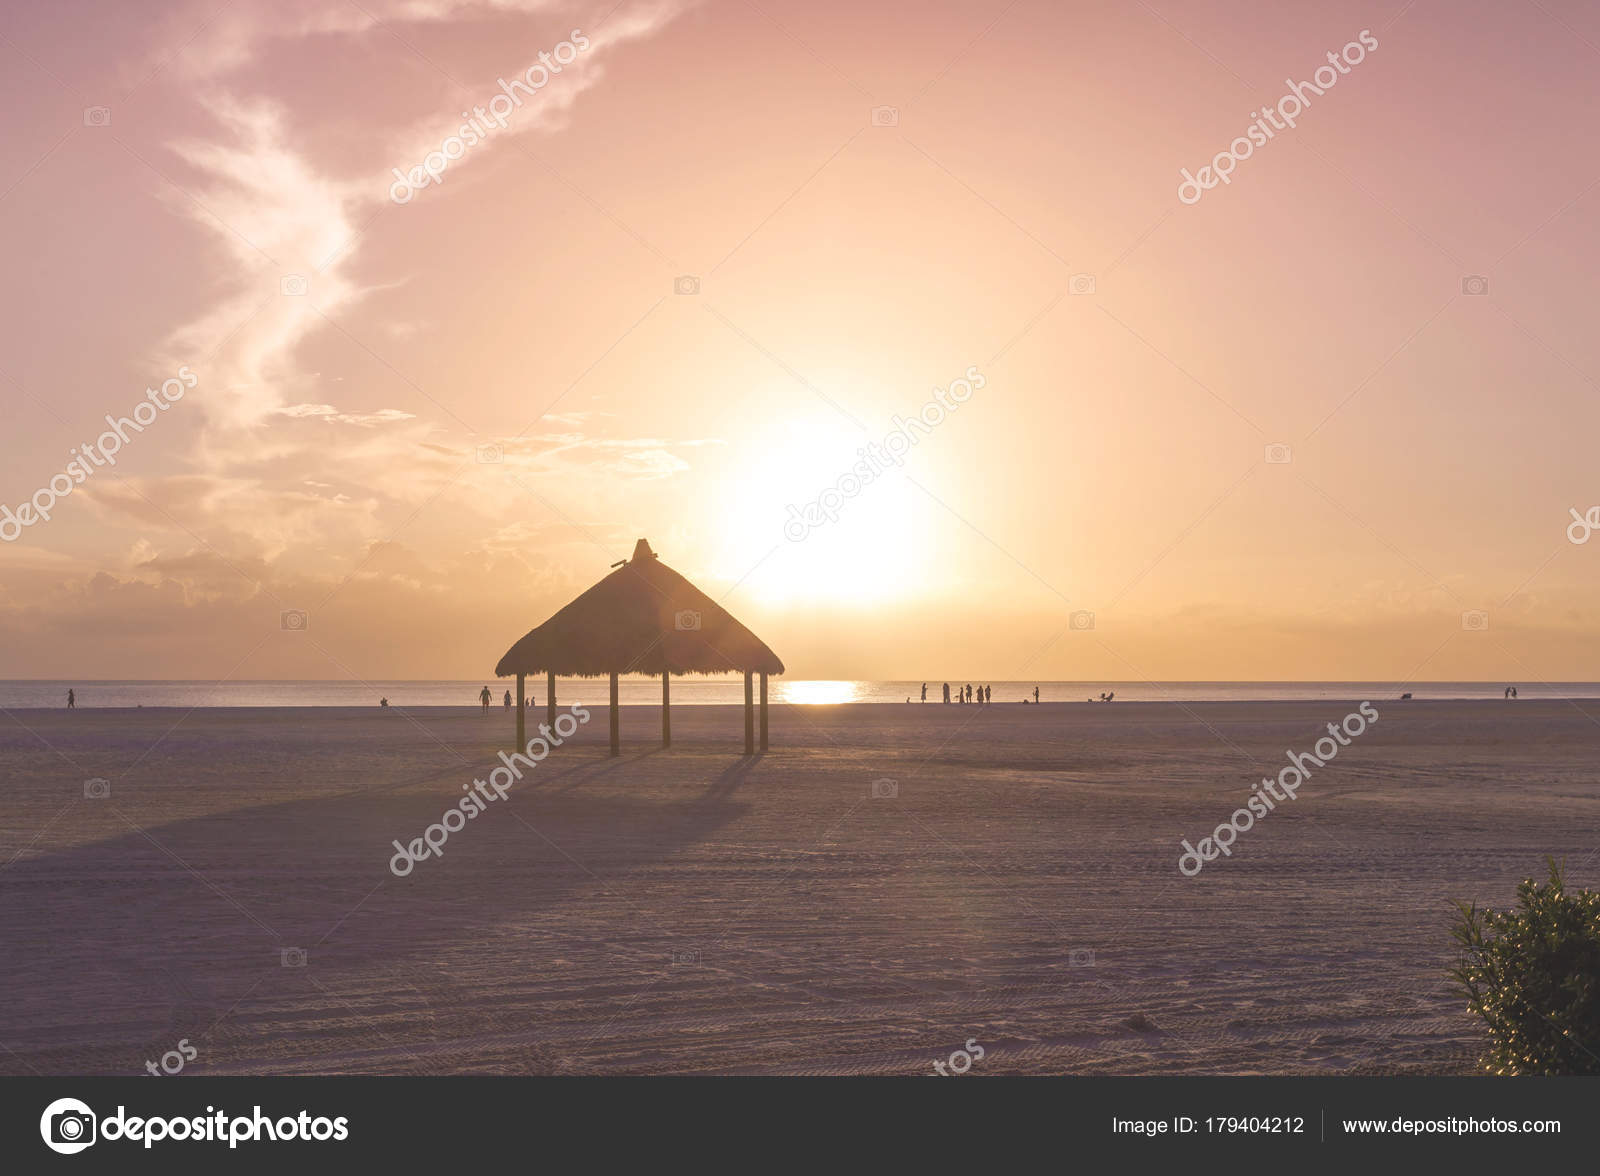 Amazing Sunset At Long Extension Beaches Of Marco Island Beach Gulf Mexico Florida USA With Relaxing Palm Thatch And Calmed Sea The